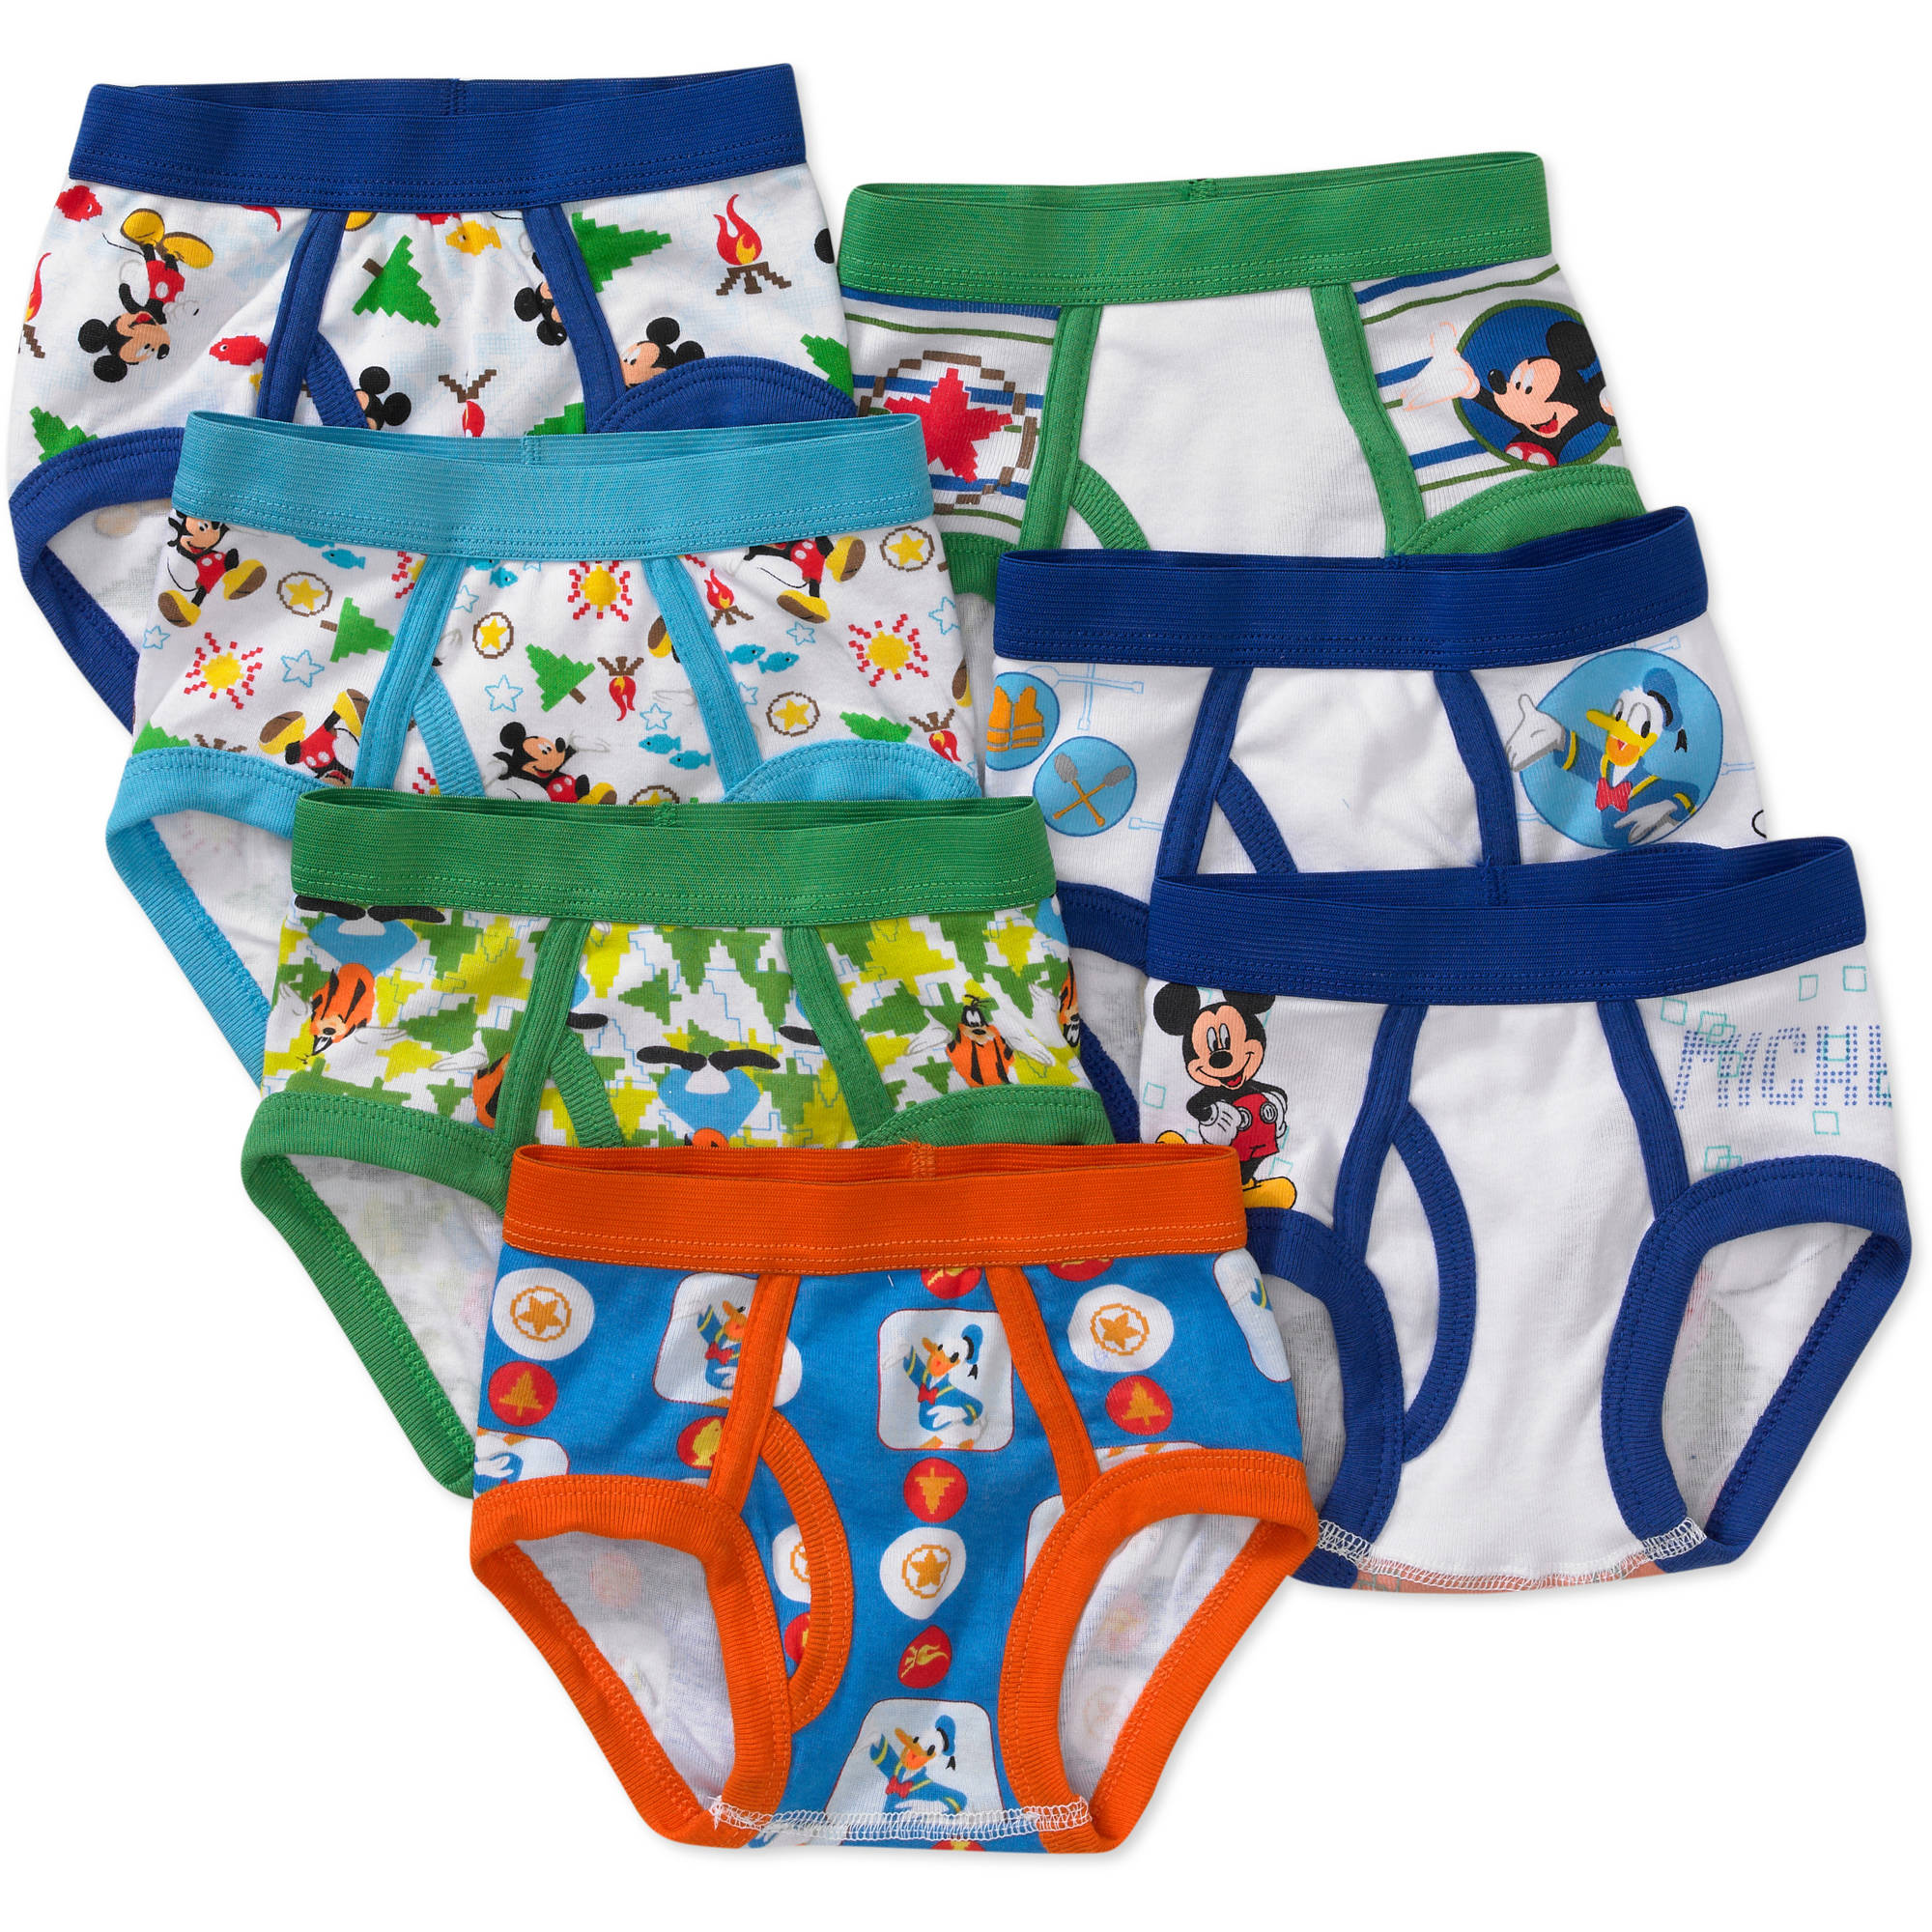 Disney Toddler Boy Mickey Mouse Underwear, 7-Pack - Walmart.com